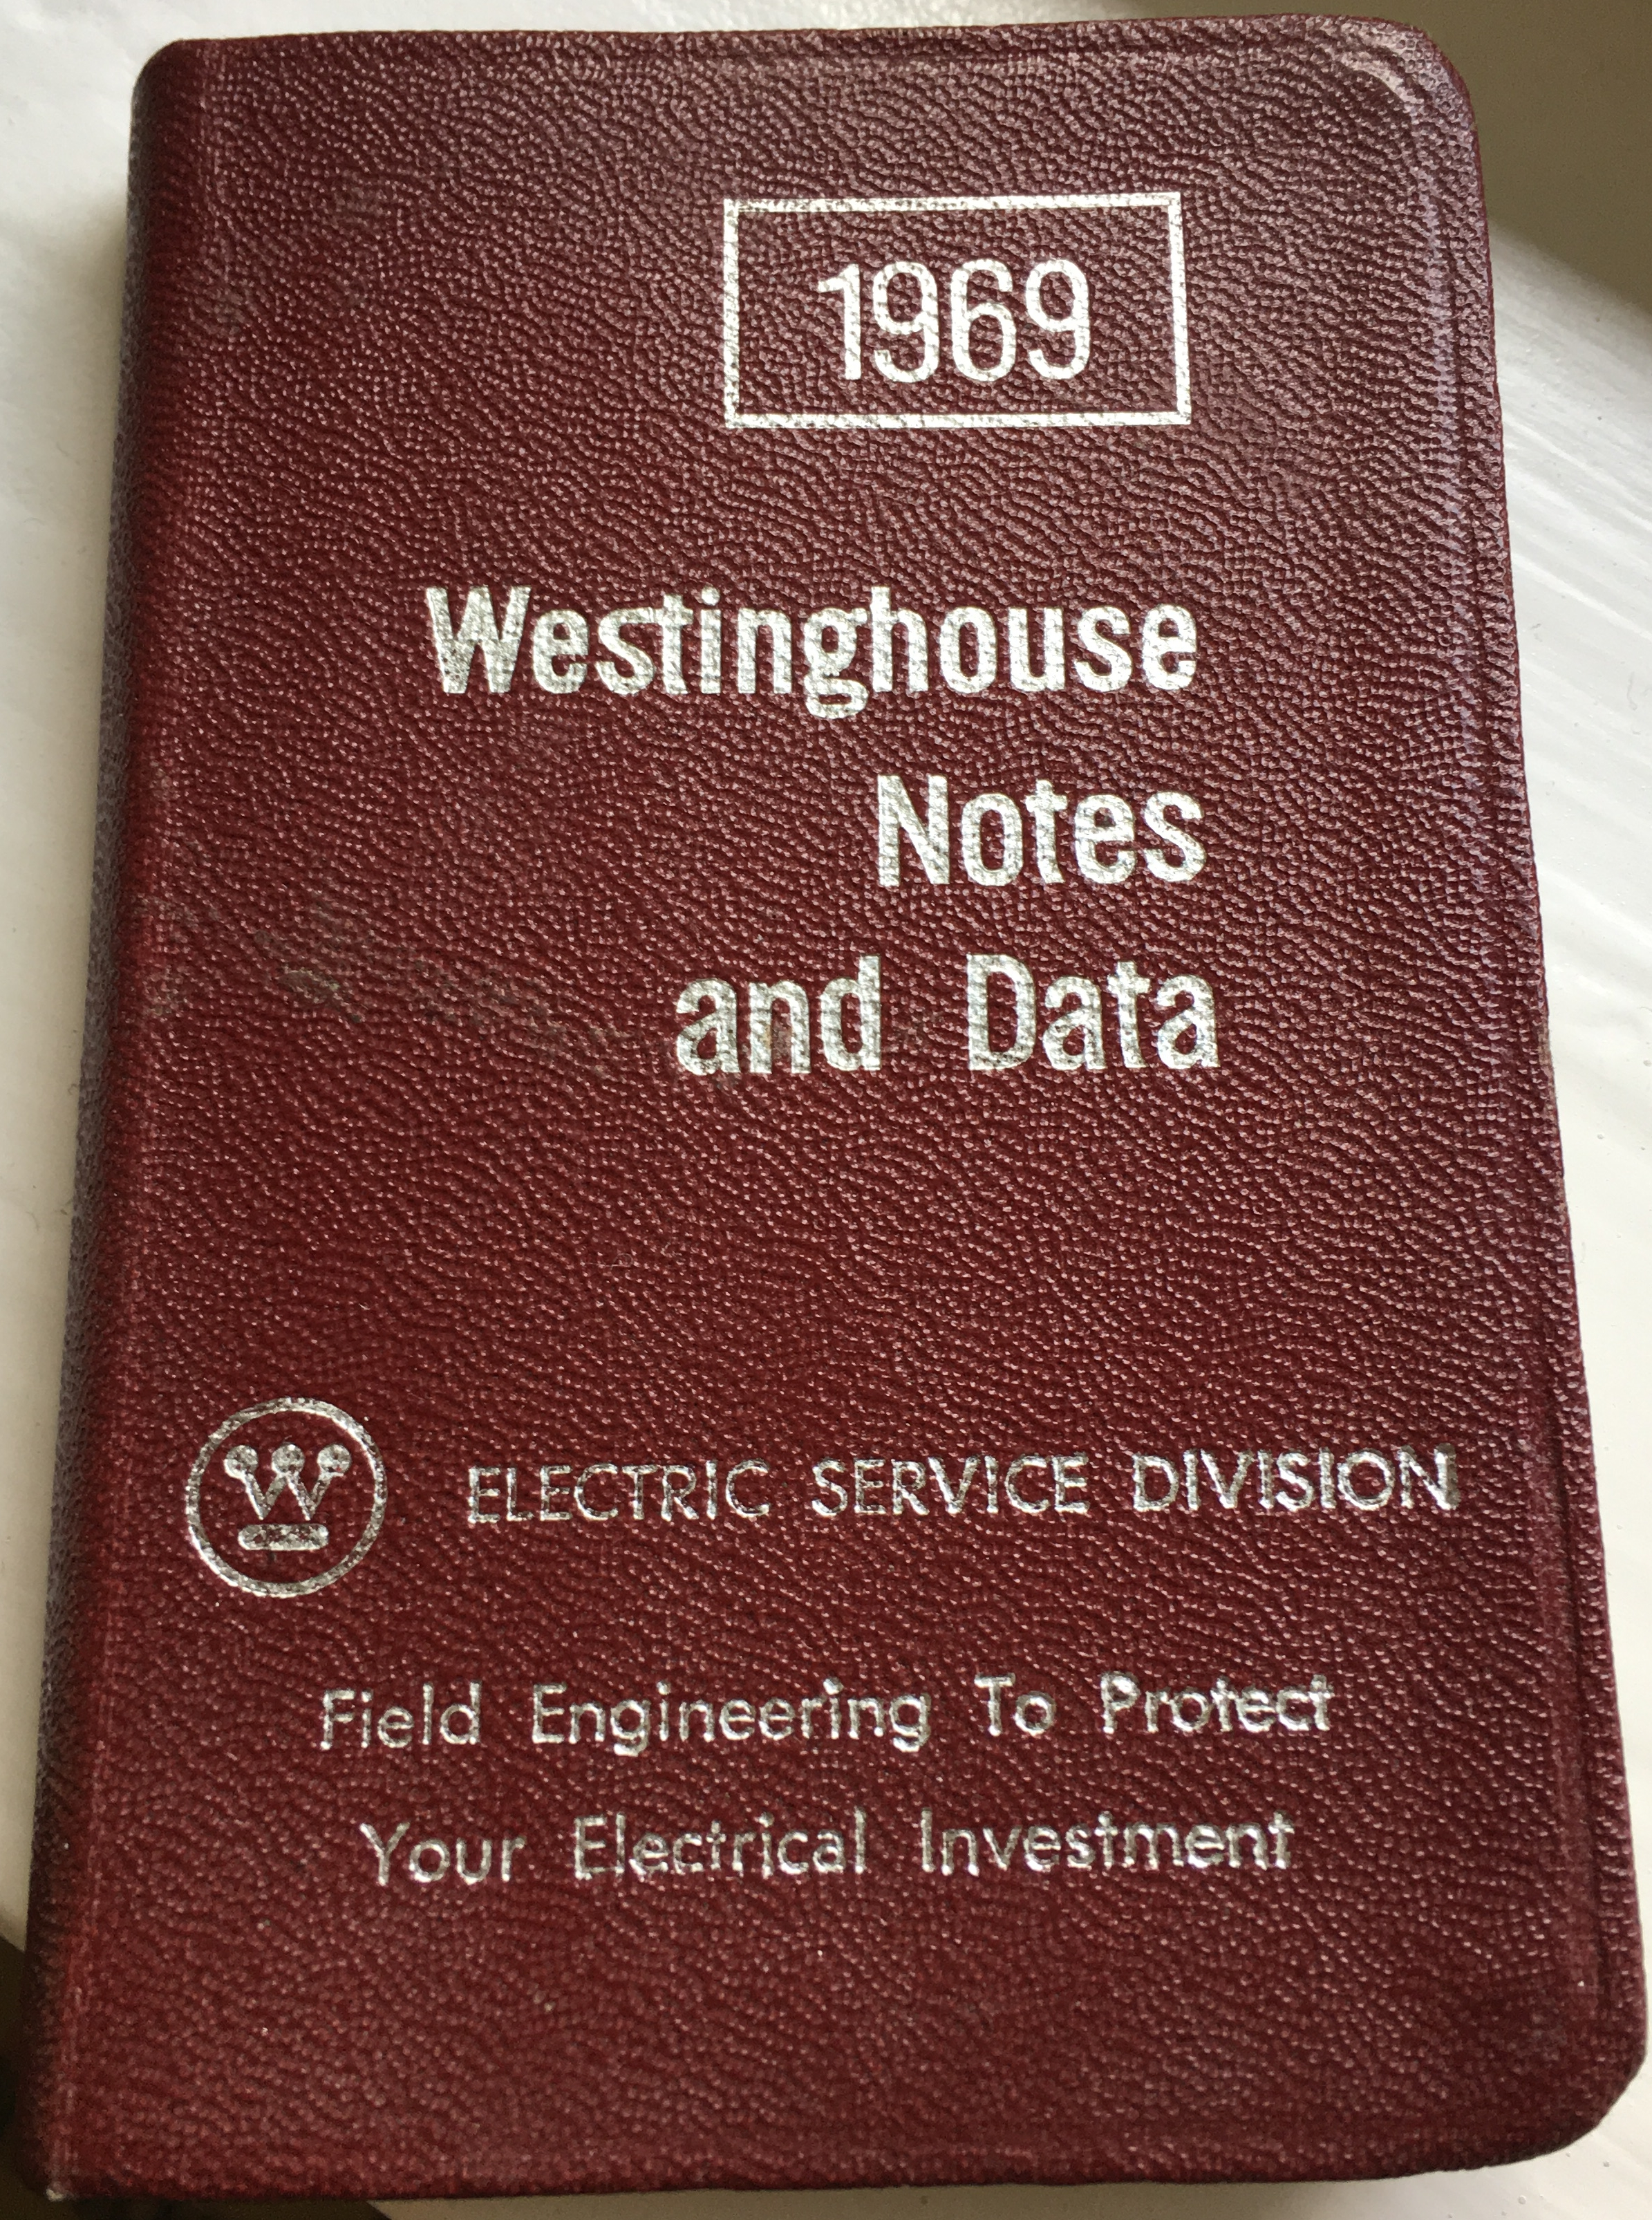 1969 Westinghouse diary collected by my daughter Lisa